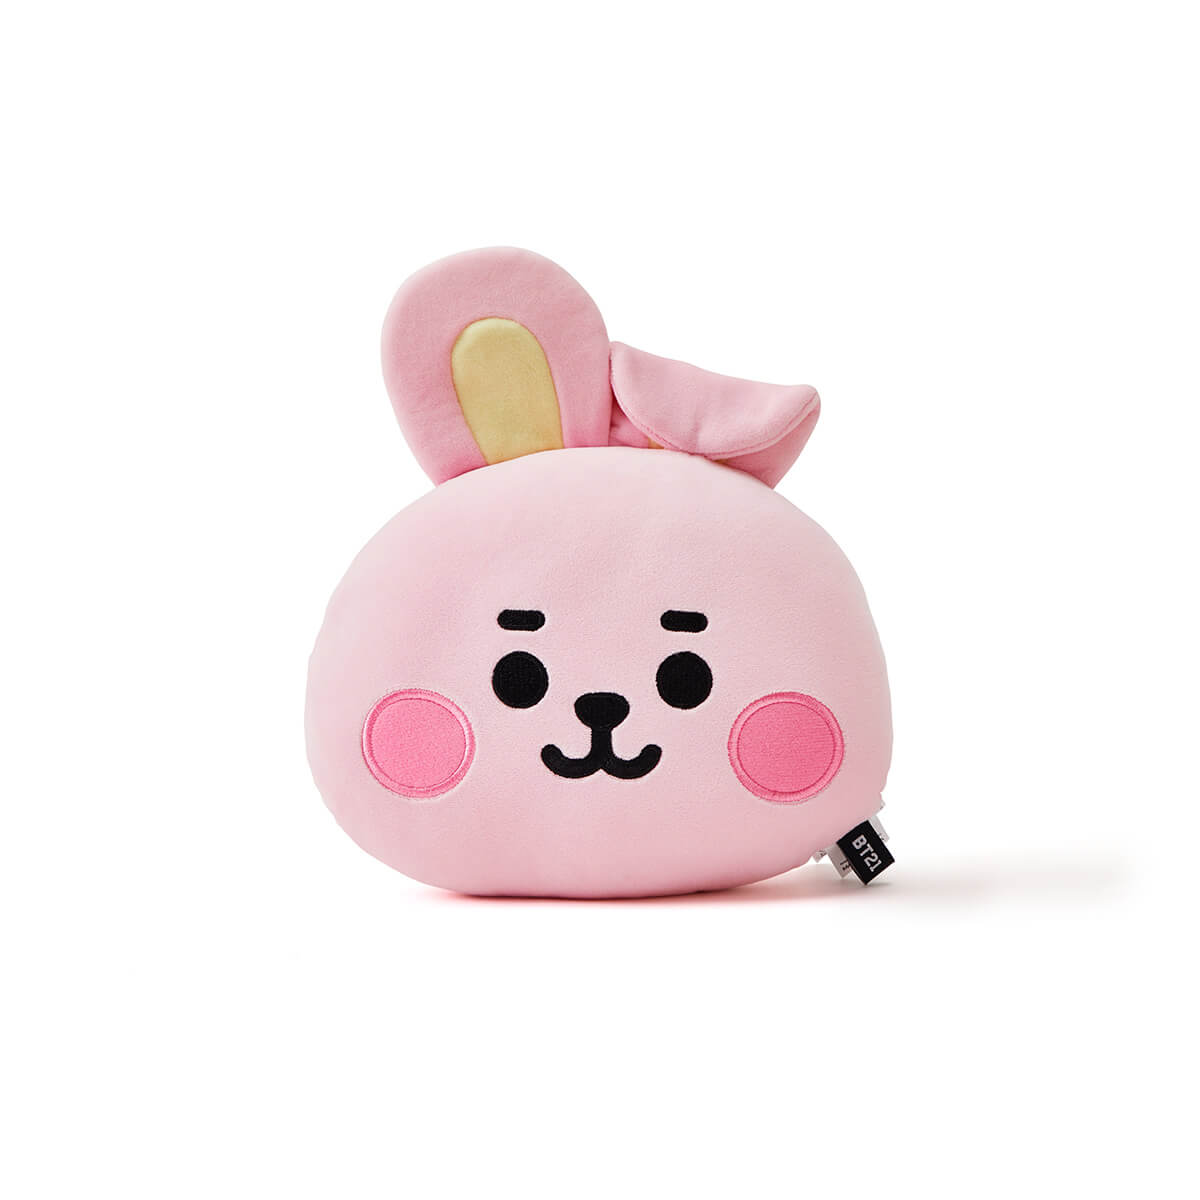 BT21 COOKY Baby Flat Face Cushion